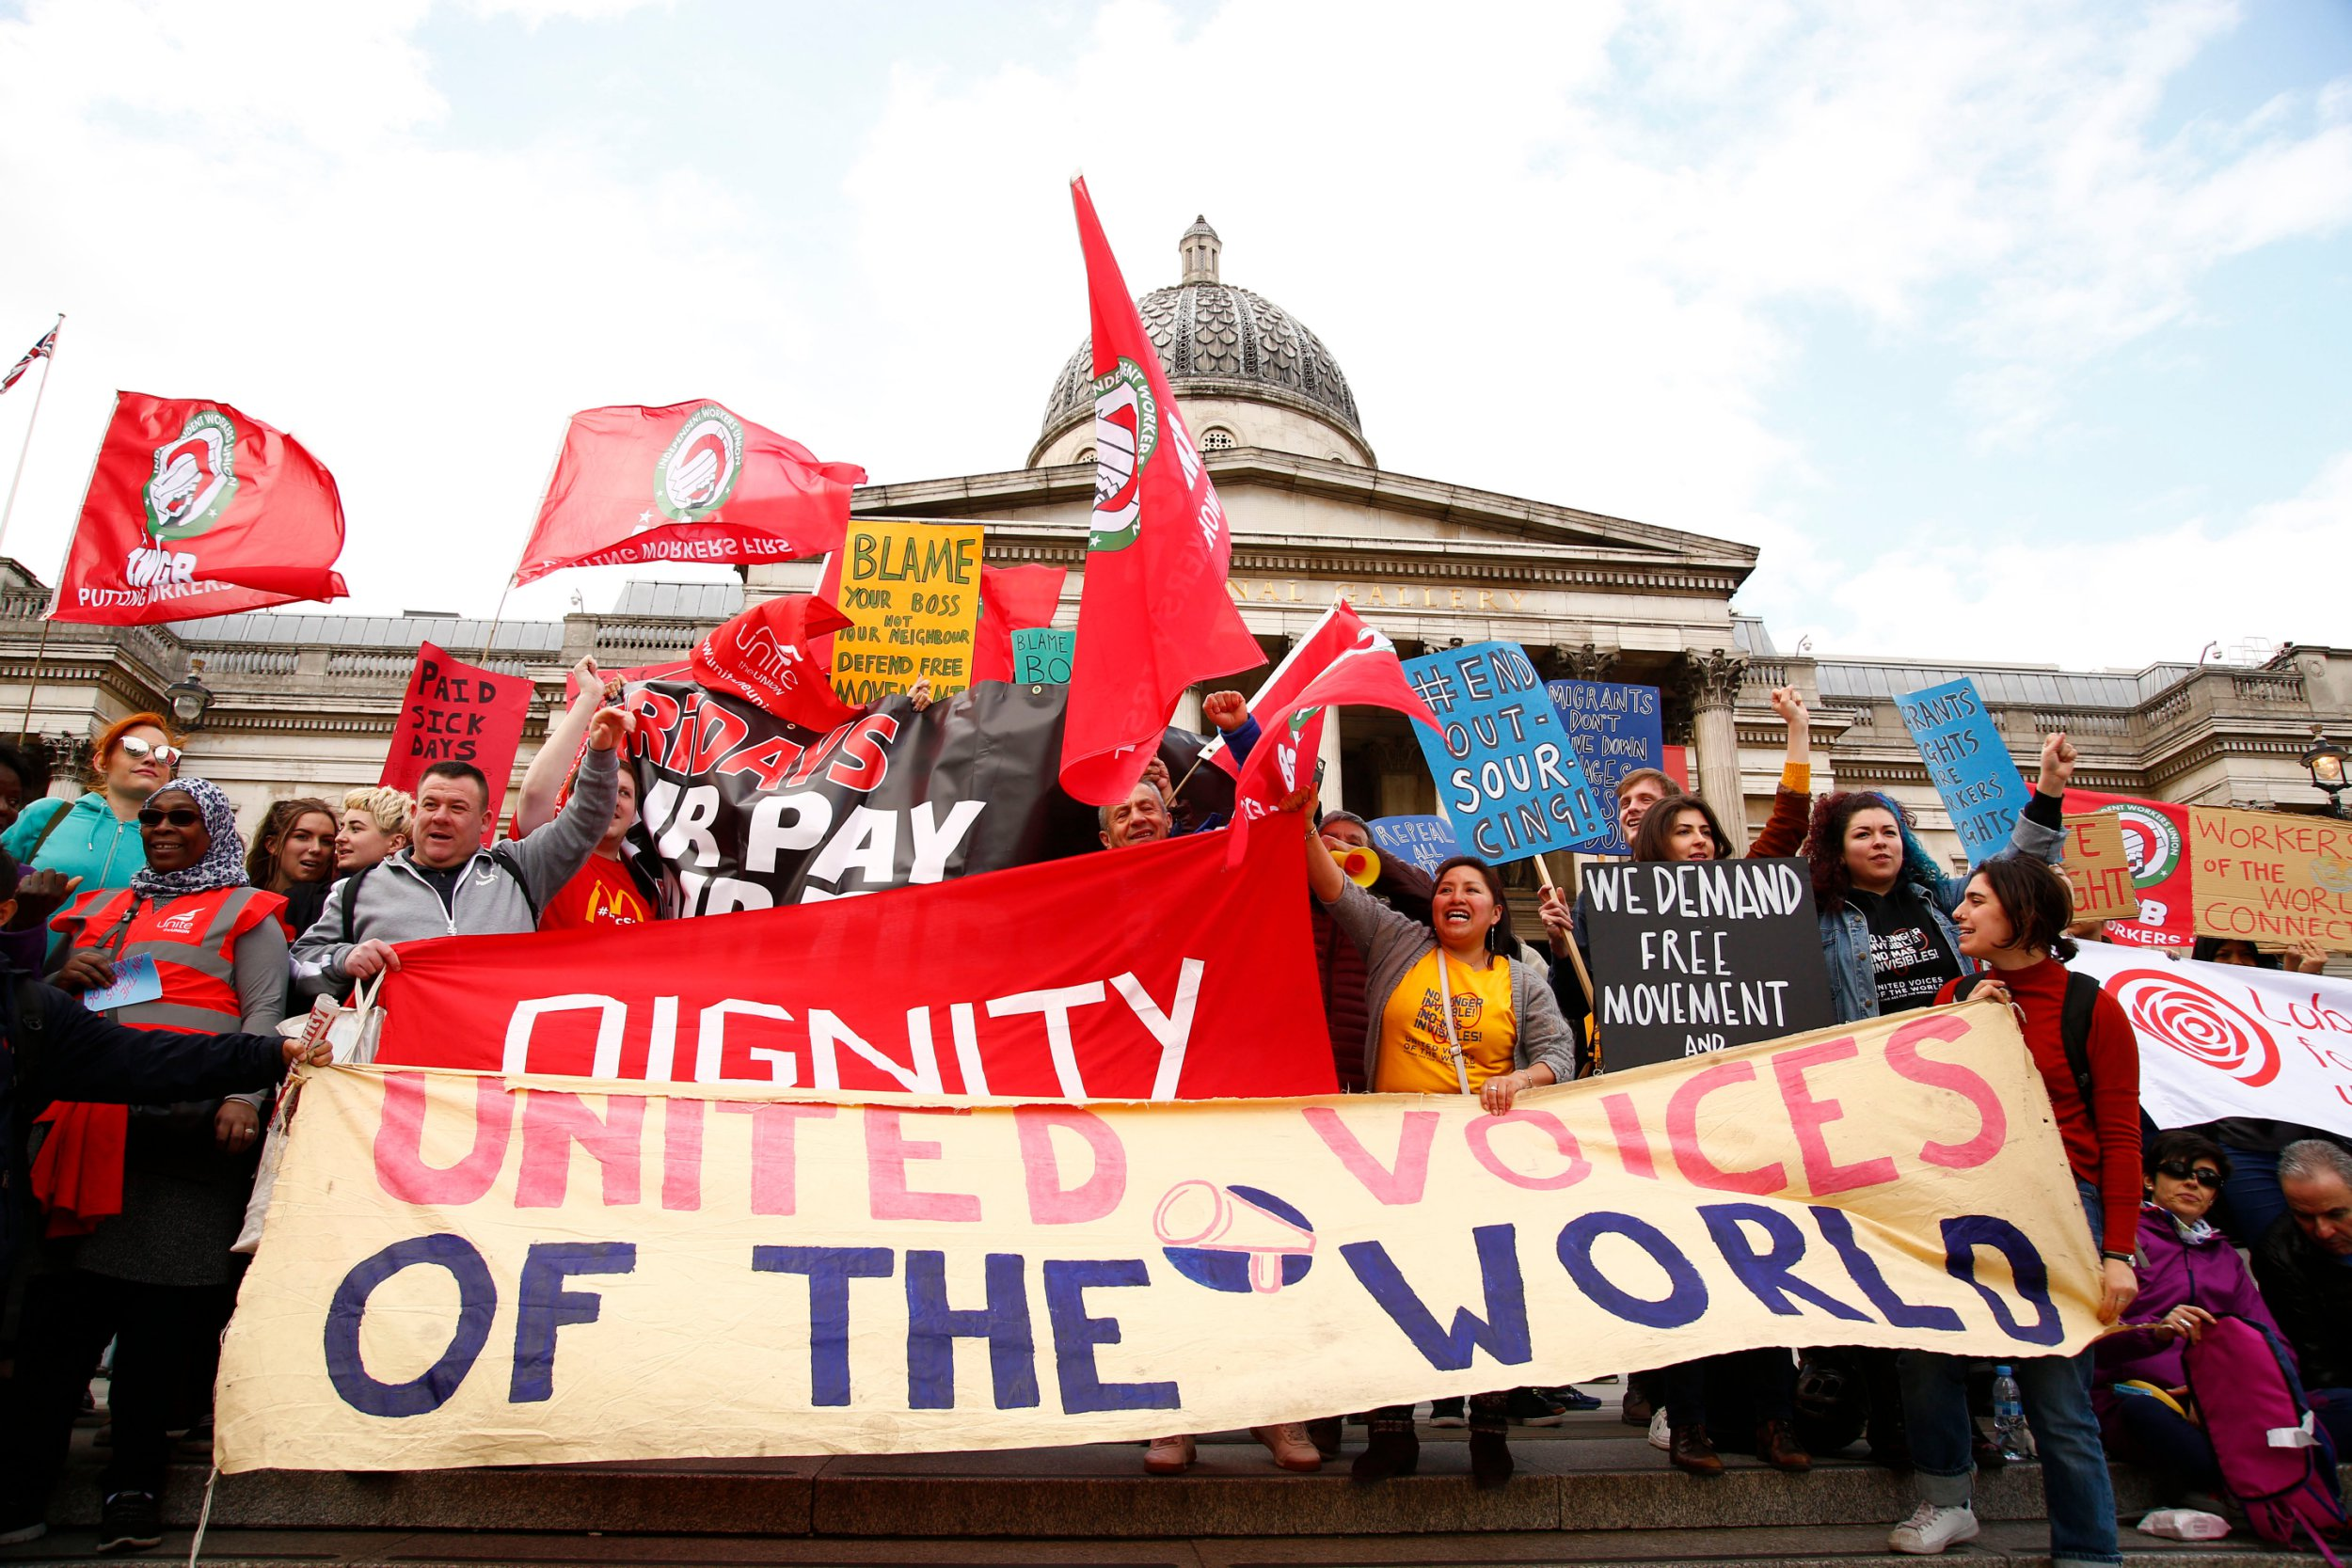 Mandatory Credit: Photo by Natasha Quarmby/REX/Shutterstock (9655957e) A group of workers form the United Voices of The World union, including, McStrike who were having a National Strike today, as well as Picture House workers, The Bakers Union and various cleaners, marched for several hours around central London shaming publicly the companies who refuse to pay their workers equal money and rights. The demo was noisy and there was a largr police presence. May Day, London, UK - 01 May 2018